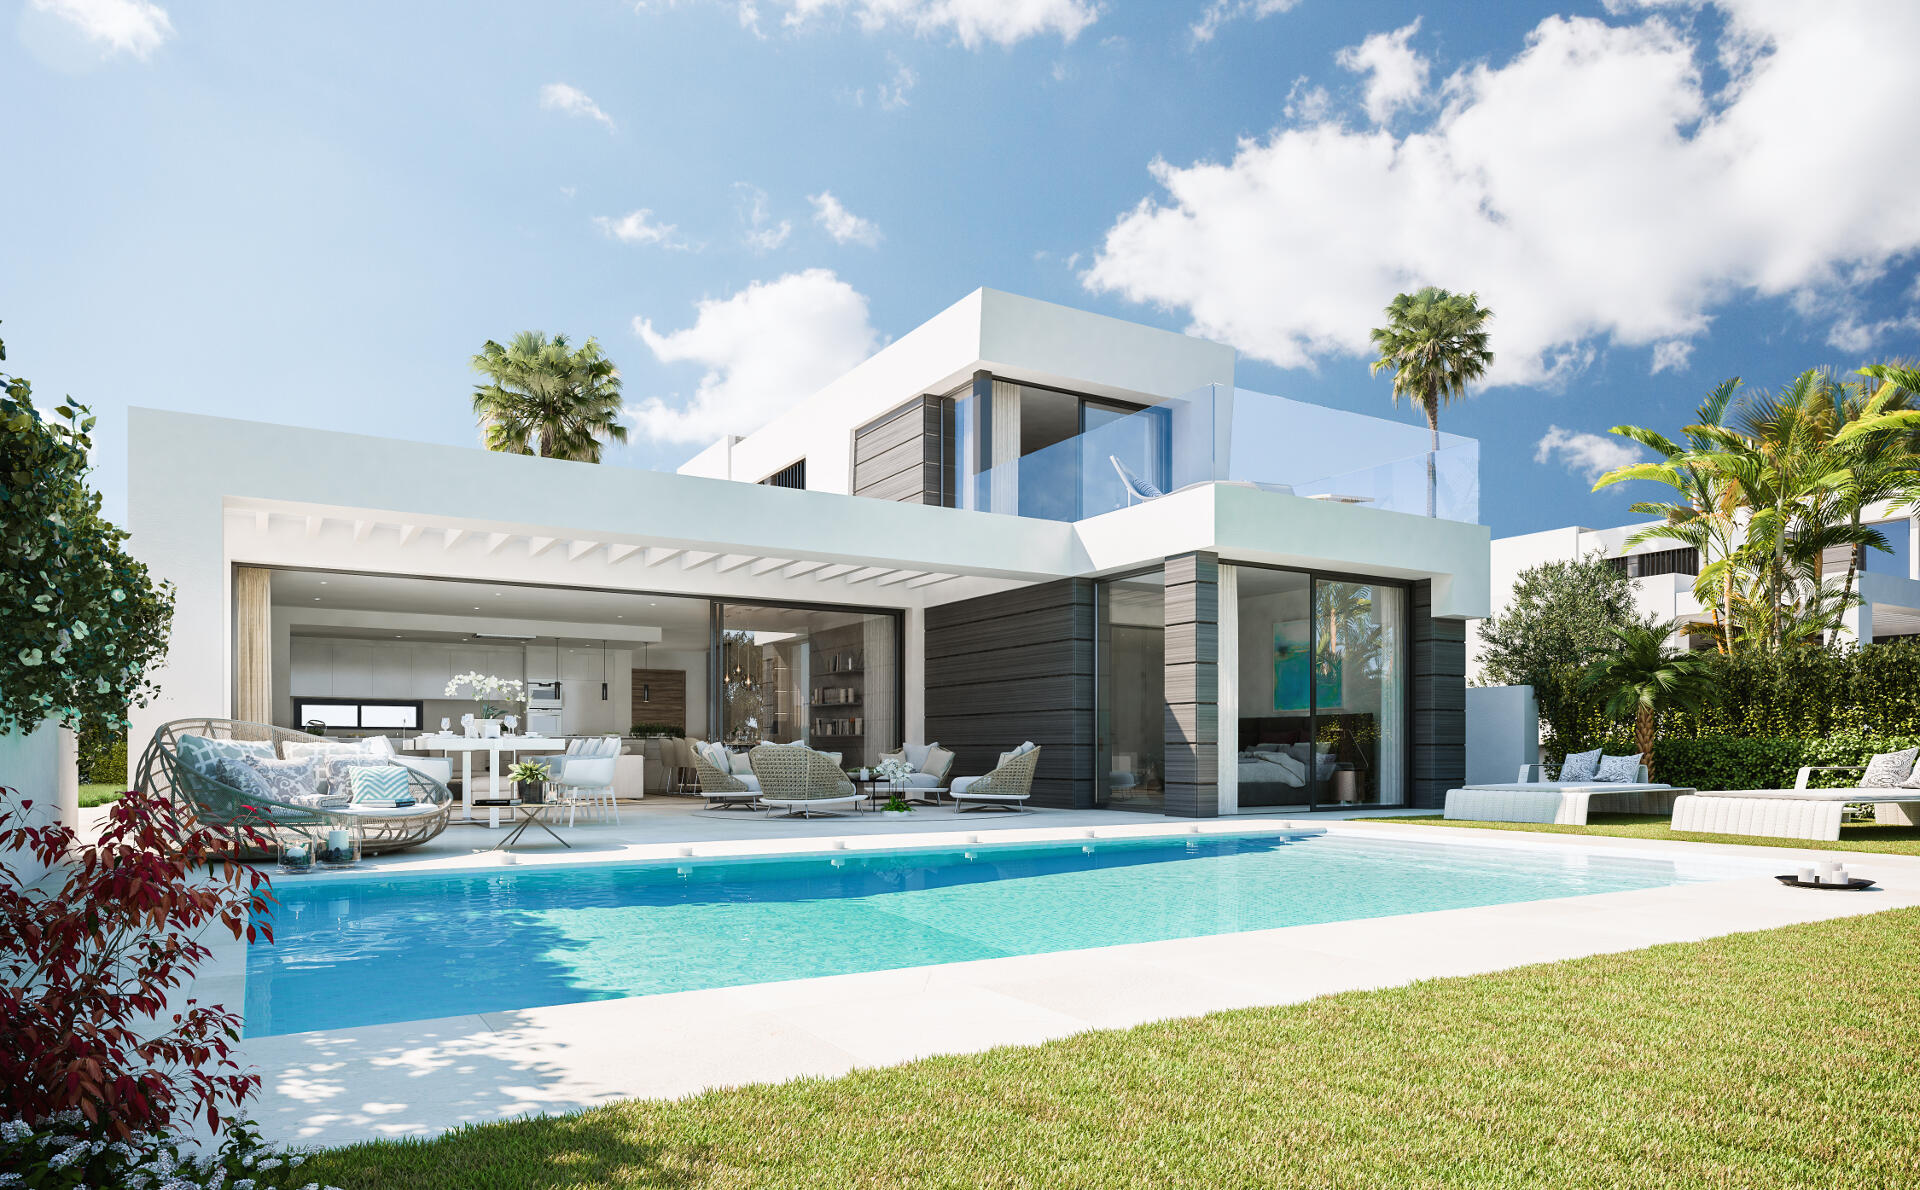 Caboroyale new luxury villa with sea views for sale in East Marbella